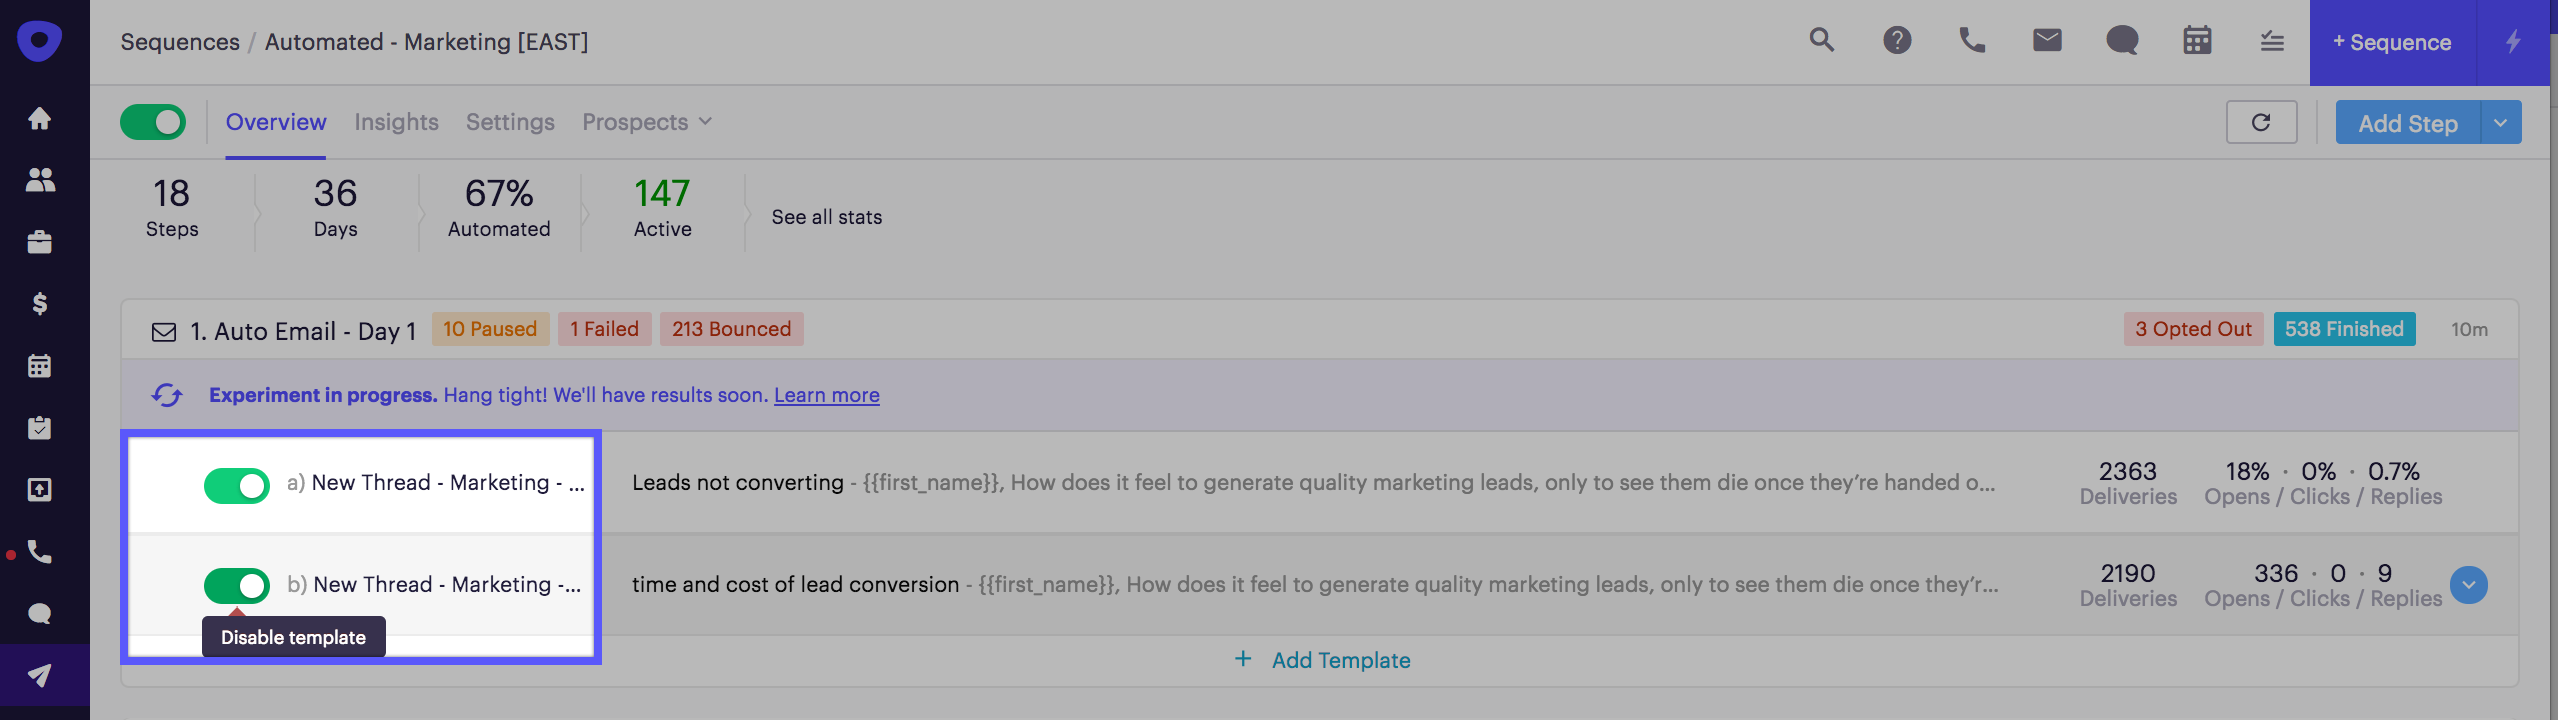 A/B Testing Sequence Steps – Outreach Support